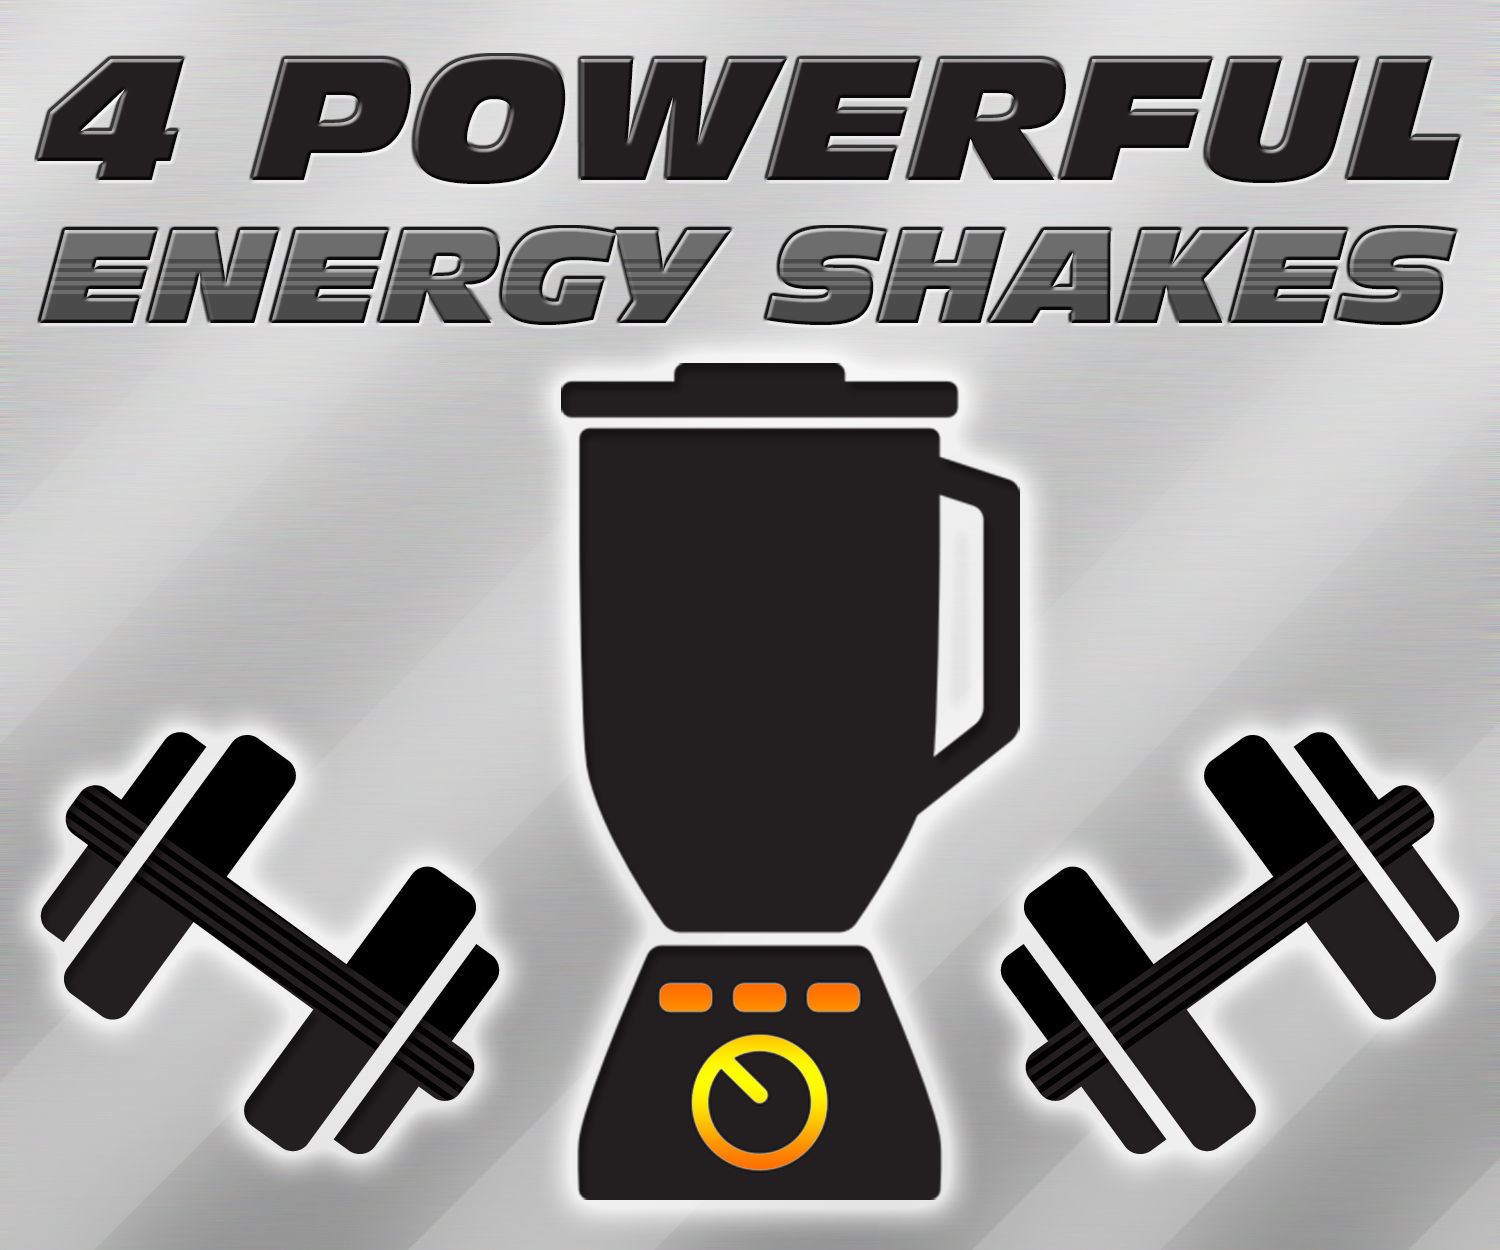 4 Powerful Energy Shakes